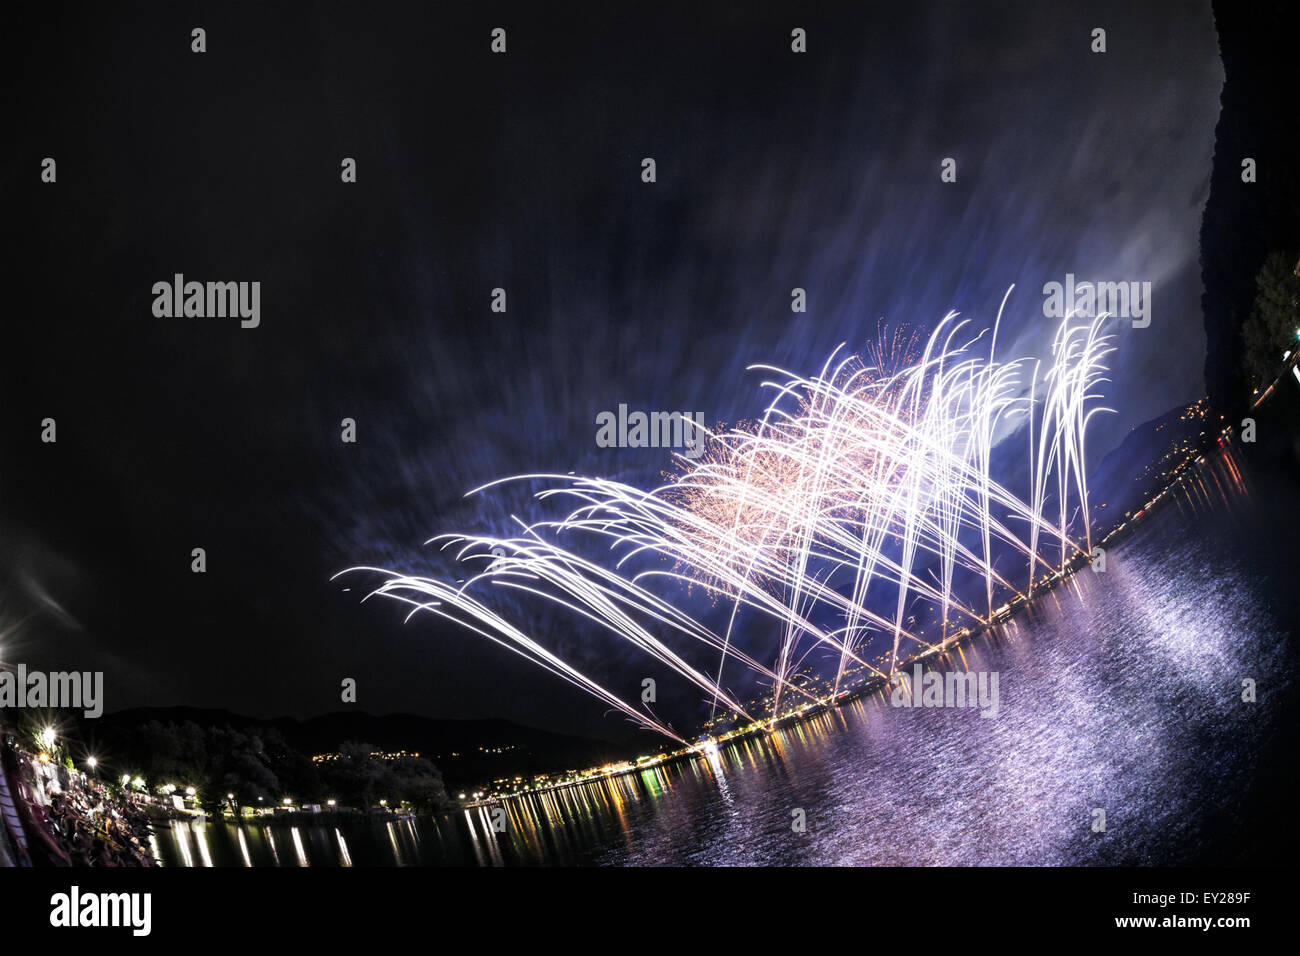 Fireworks on the Lugano Lake in a summer evening seen from lakefornt of Lavena-Ponte Tresa, Lombardy - Italy Stock Photo